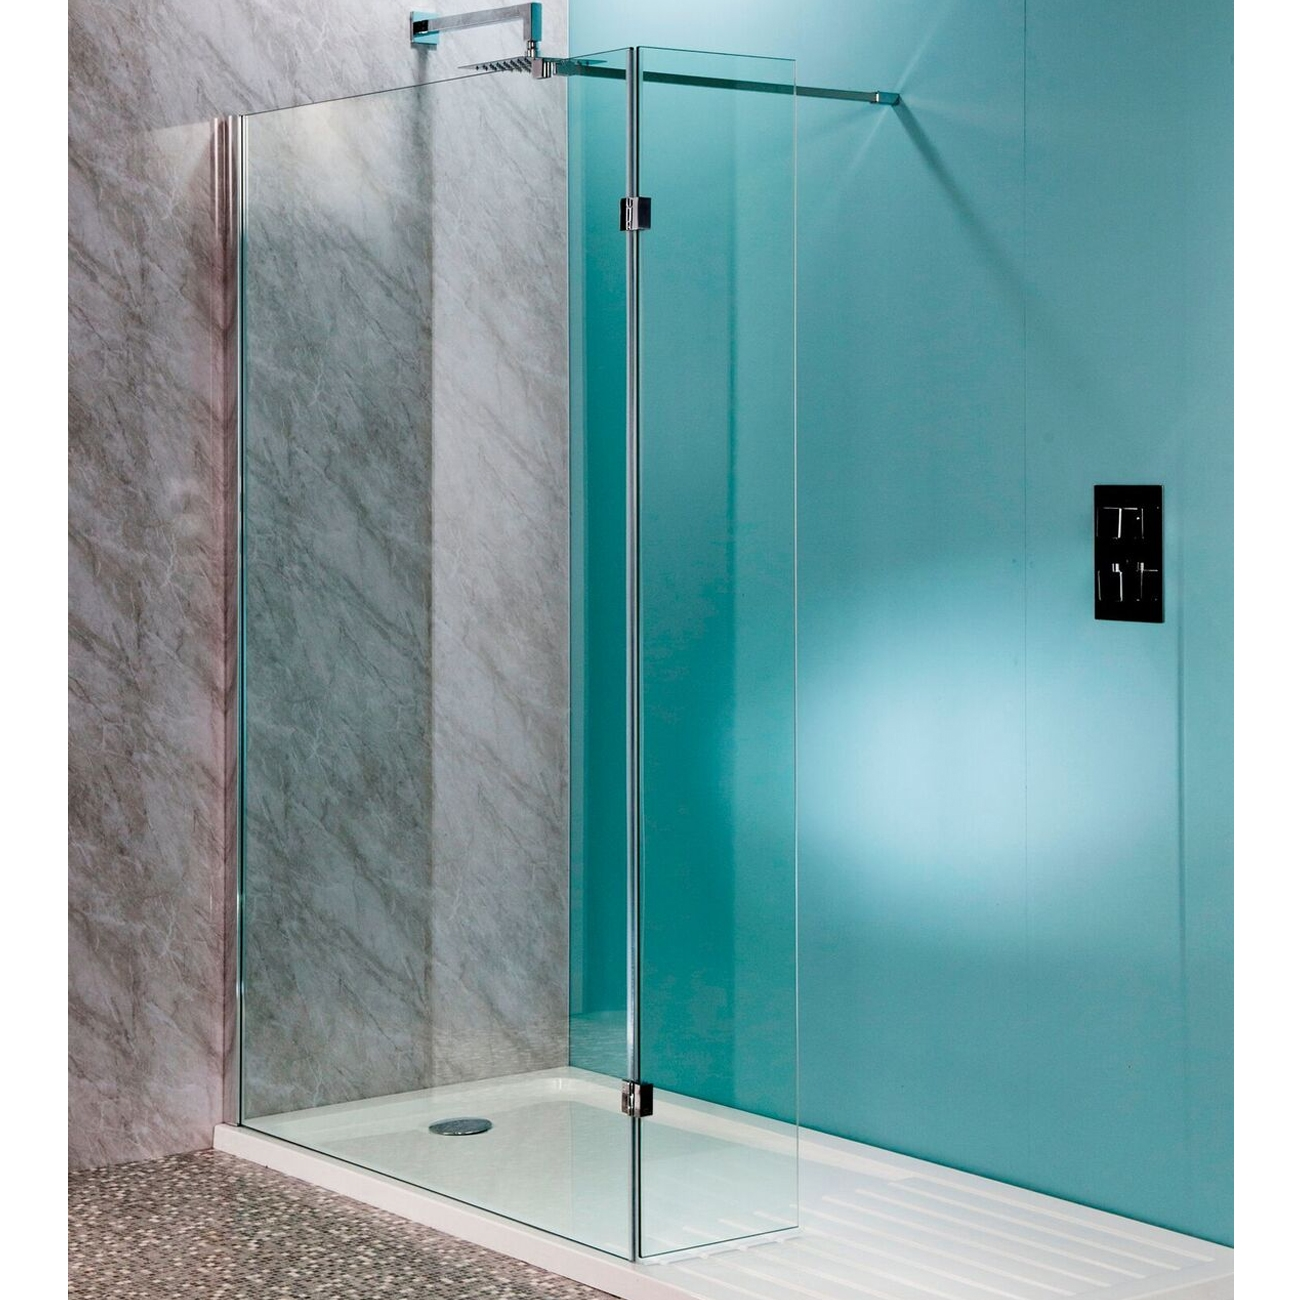 Cali Lana Easy Clean Wet Room Glass Panel 700mm Wide - 10mm Glass-0